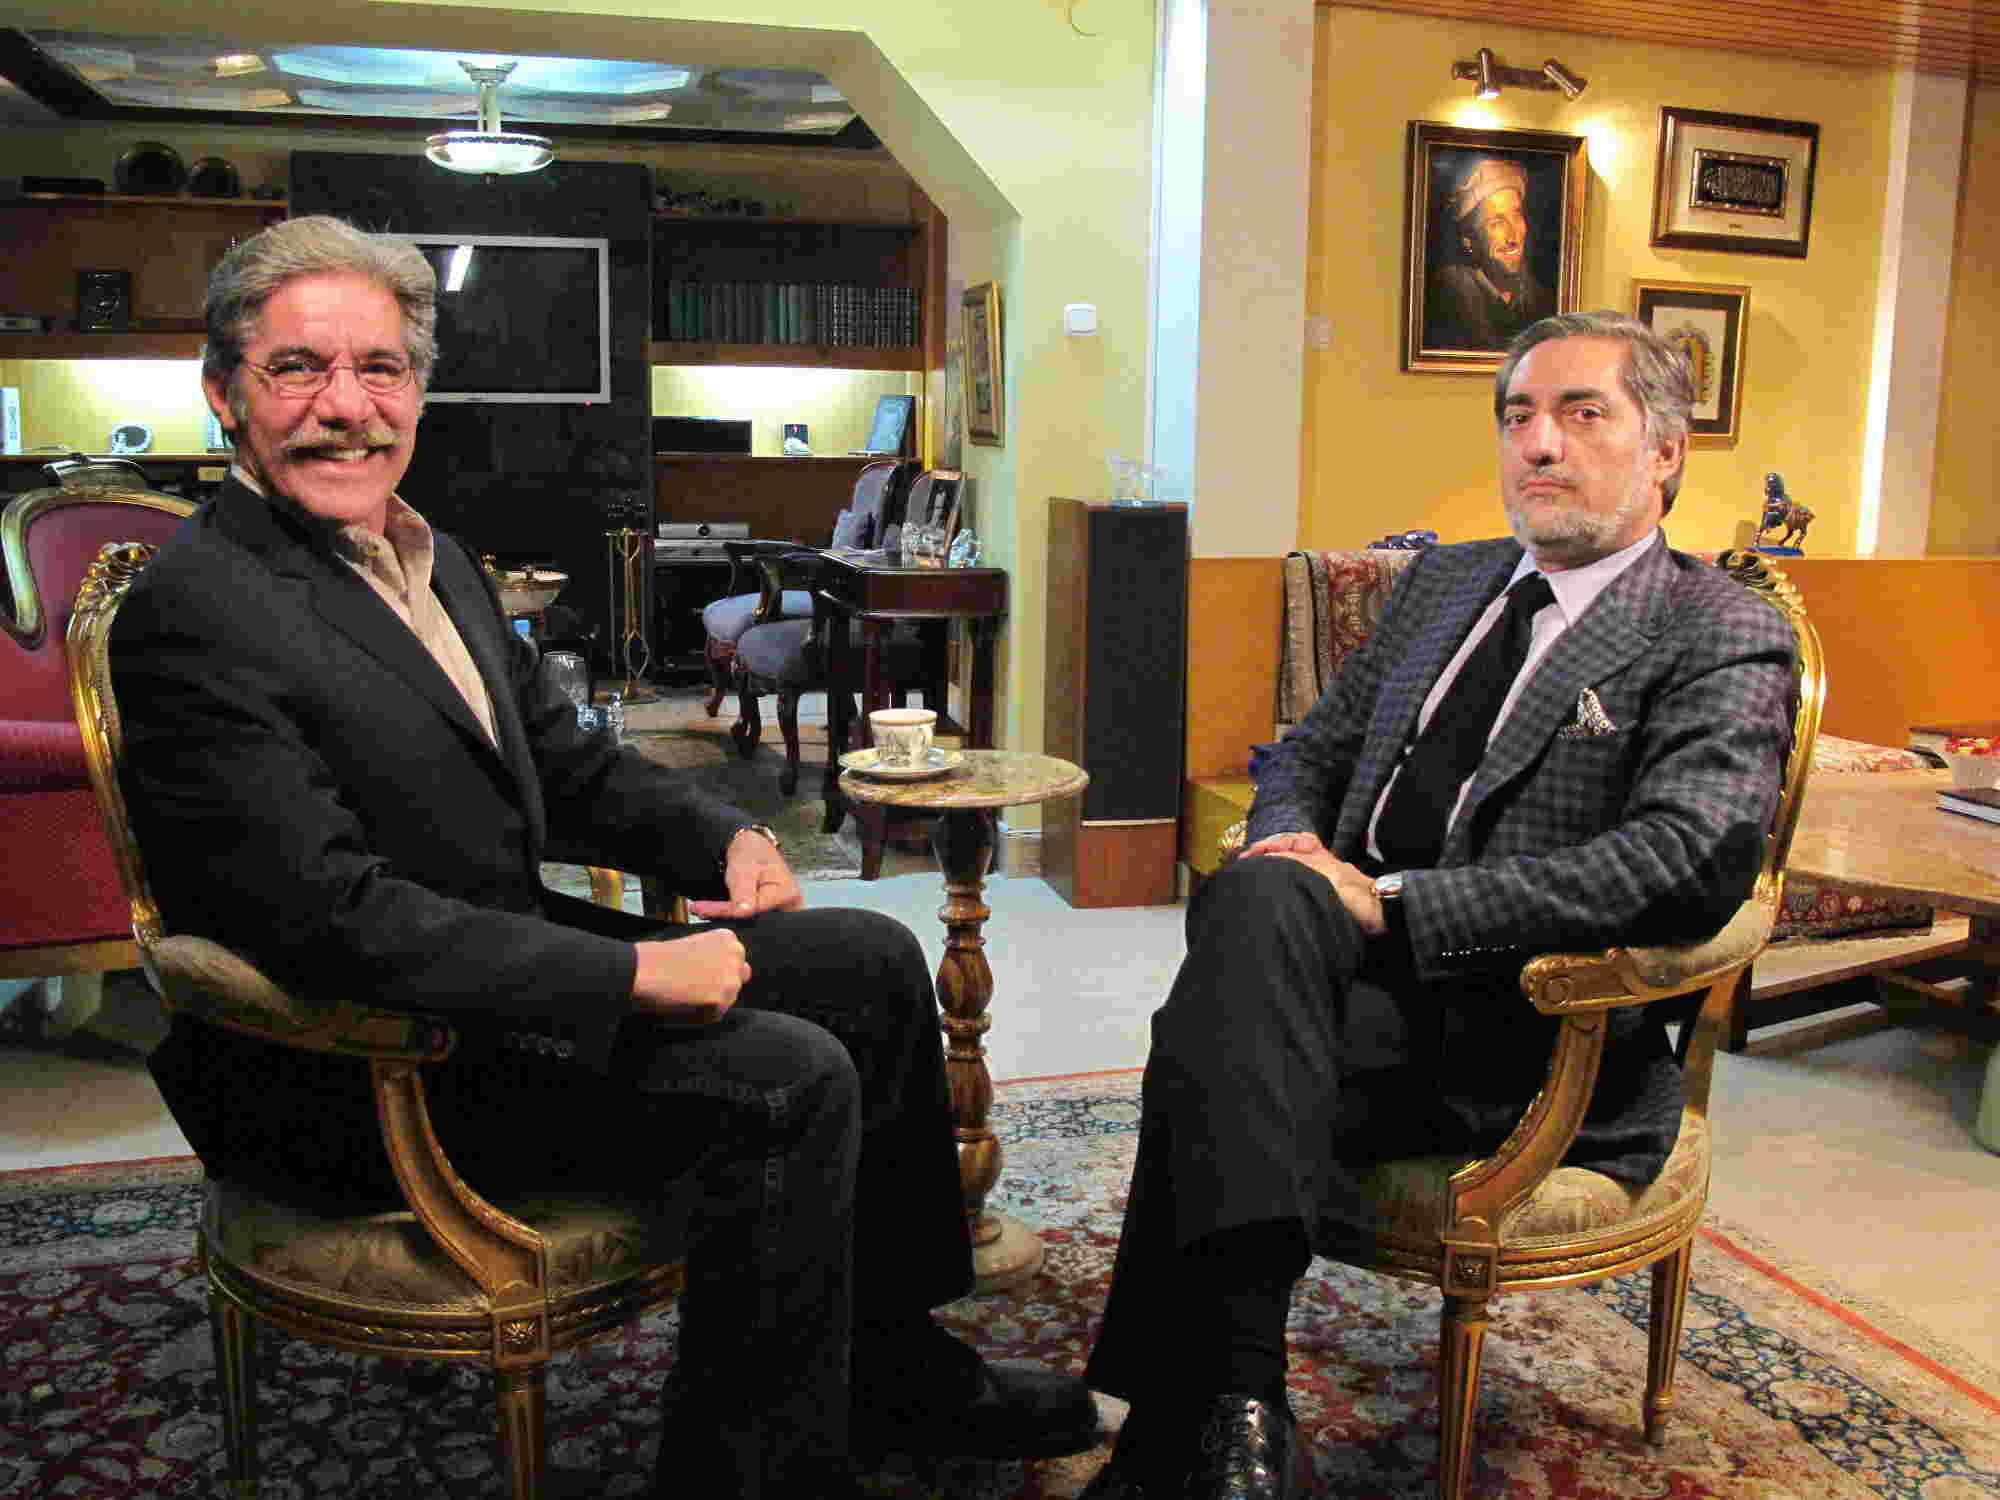 Geraldo and guest face the camera during an interview